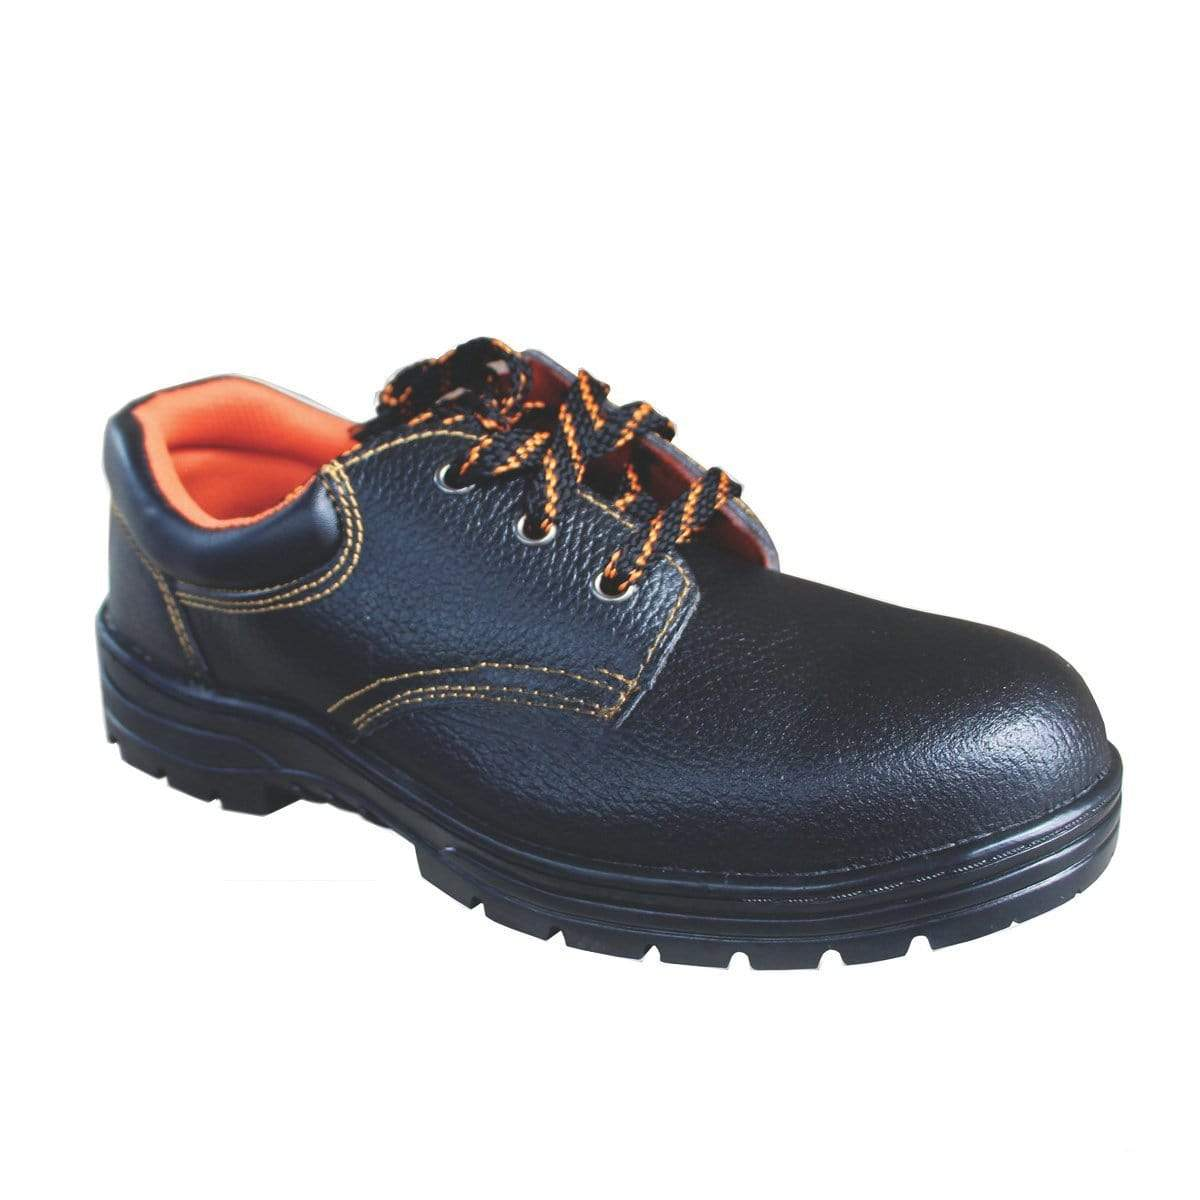 ANEKA Worker Safety Shoes Safety Boots Steel Toe Cap Kasut UK4 1000#